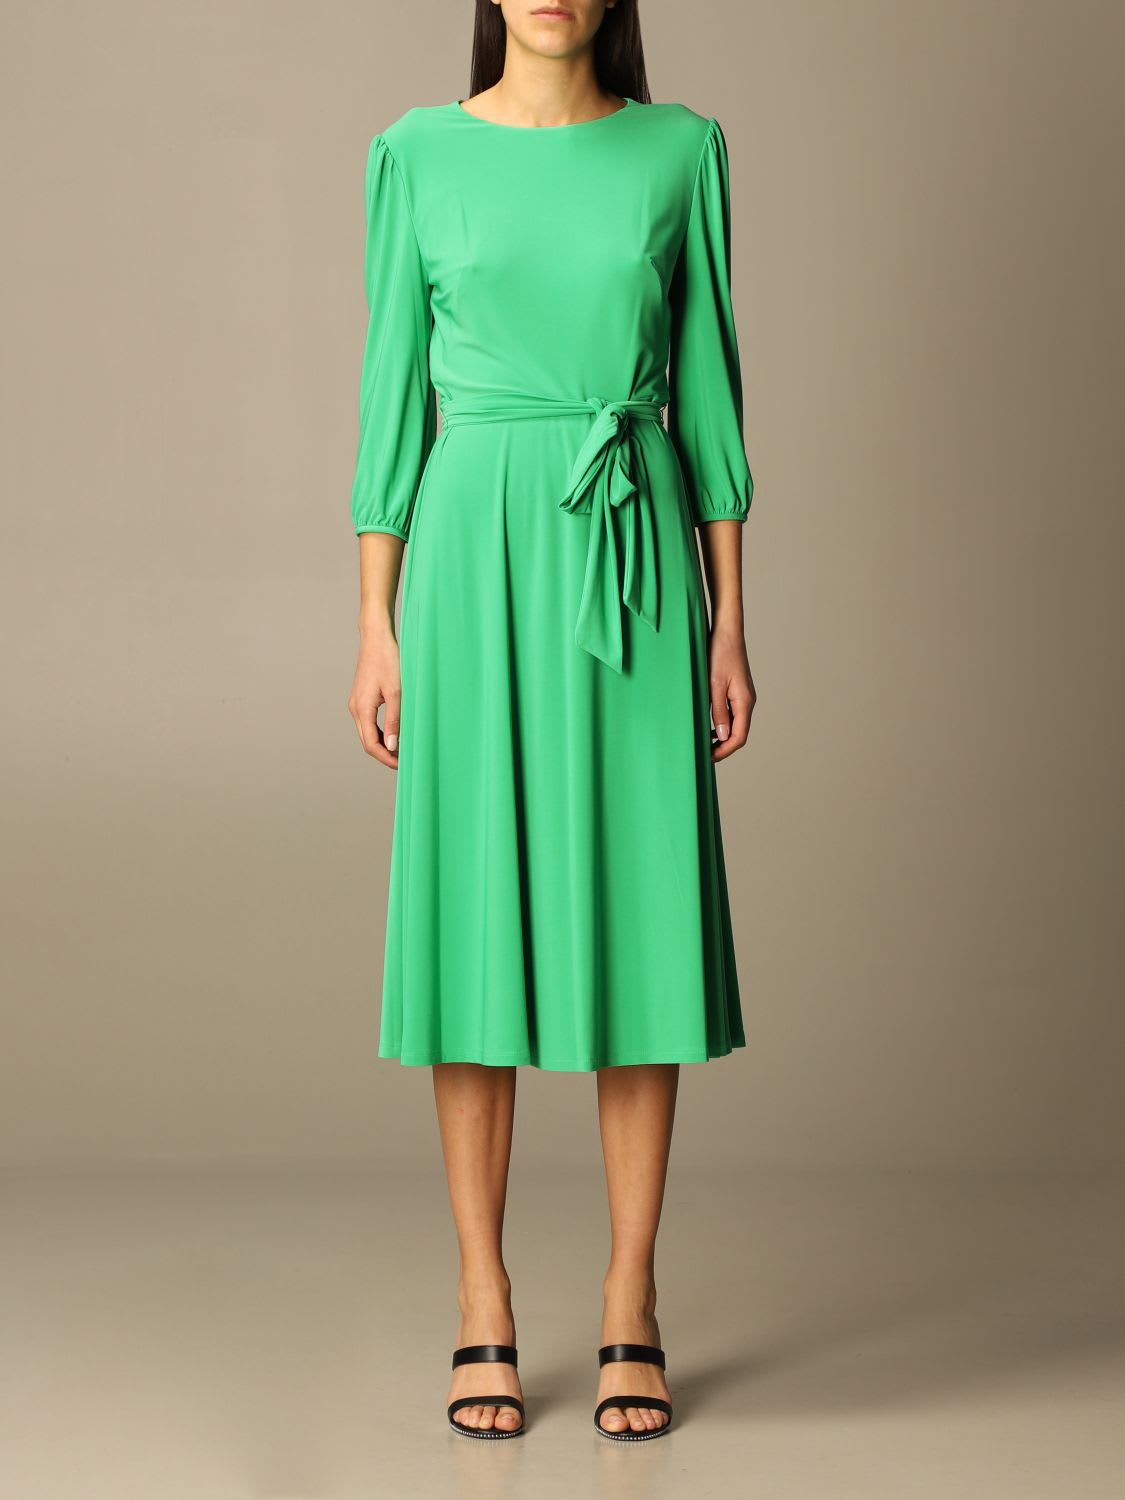 Lauren Ralph Lauren Dress Lauren Ralph Lauren Dress With Band Belt